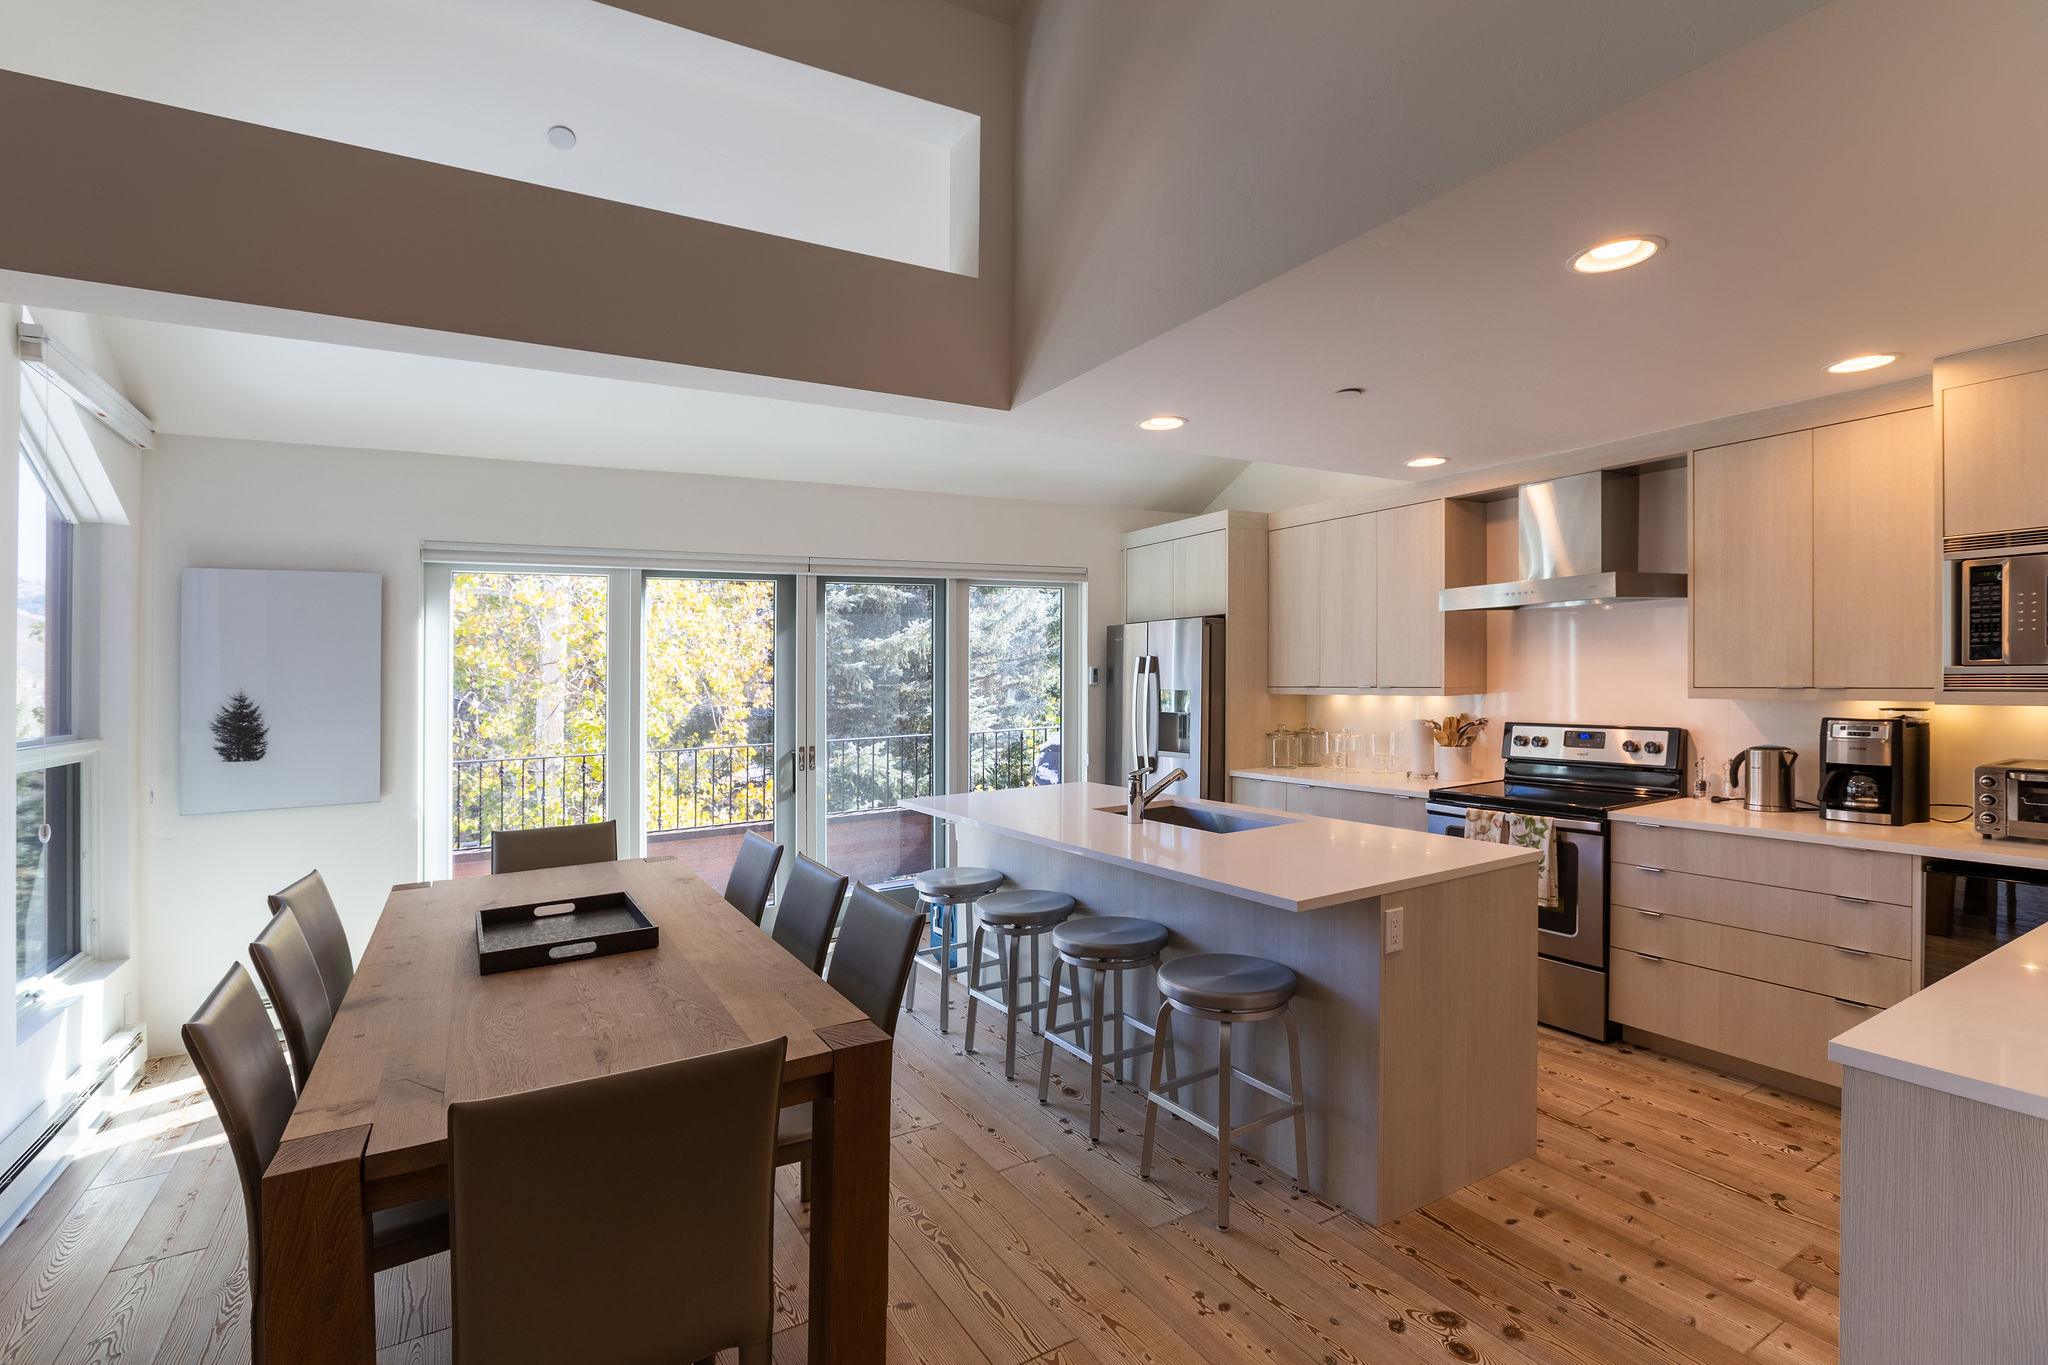 Well Known Northwoods 3 Piece Dining Sets Inside Vail Realty – Northwoods Aspen Bldg 211 3 Bed 3 Bath Vacation (View 22 of 25)